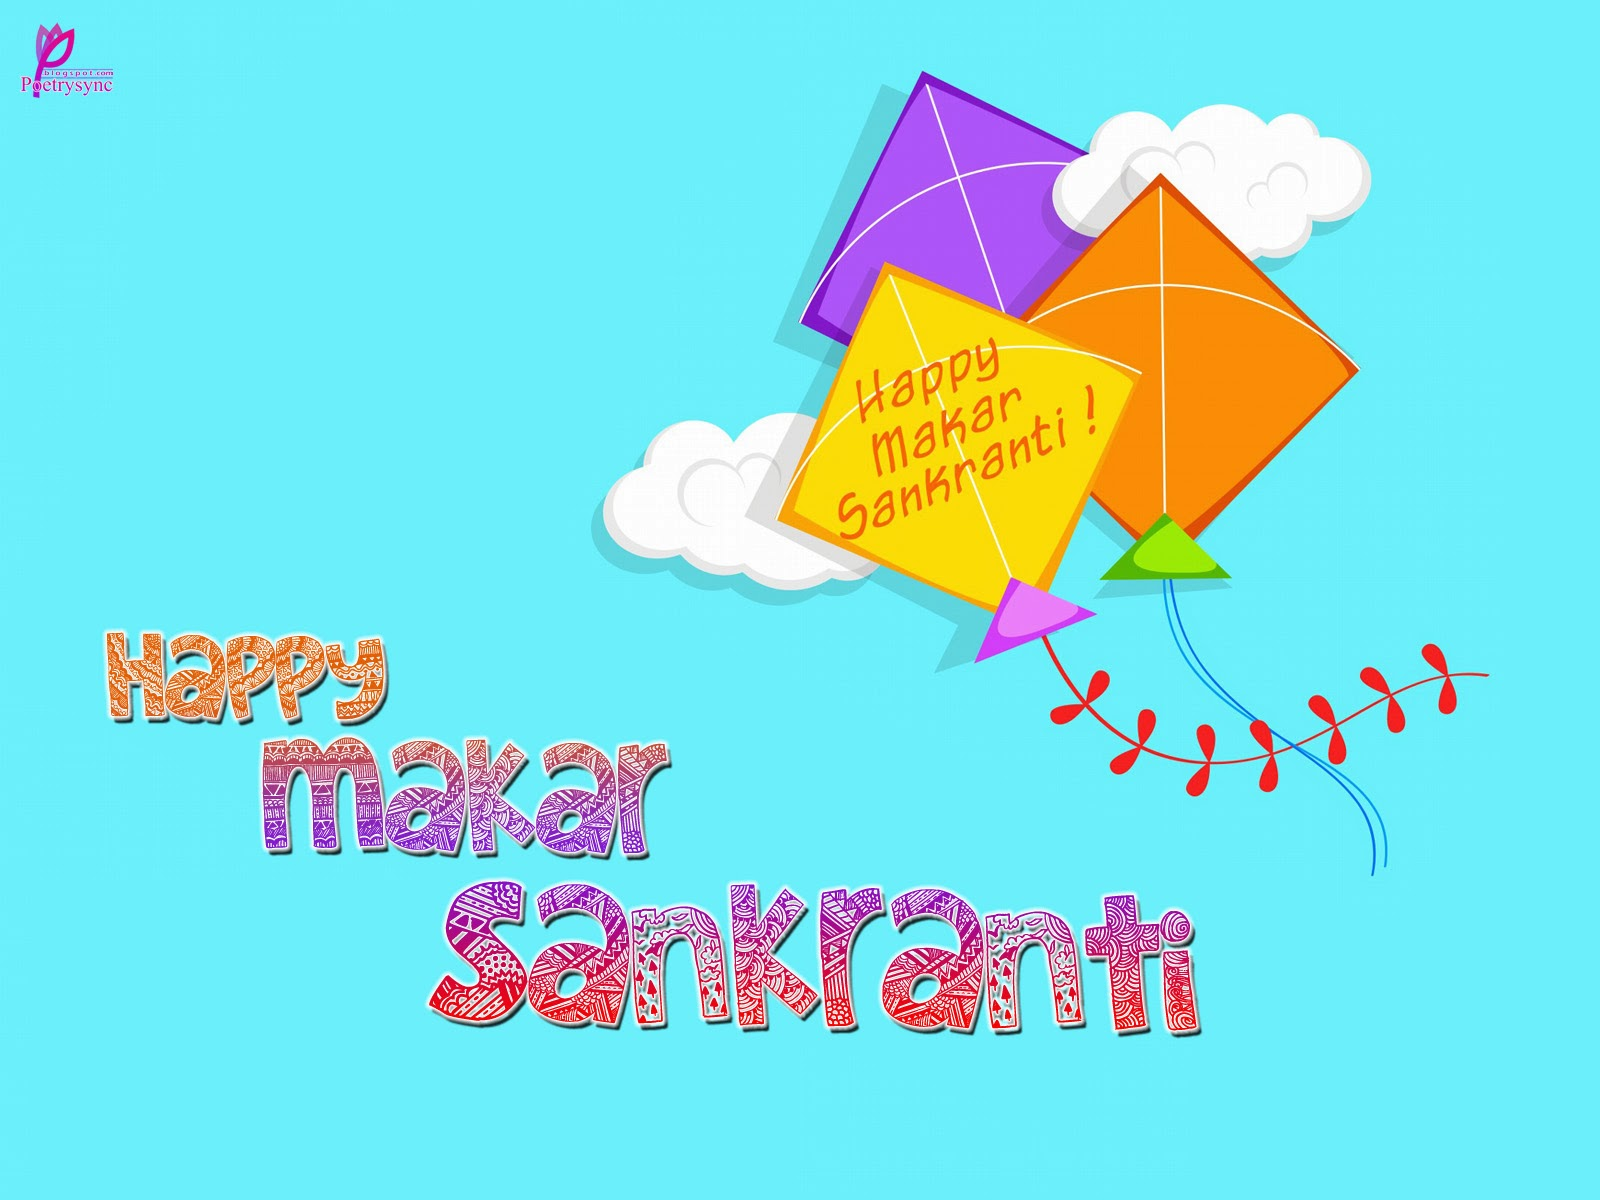 Happy Makar Sankranti 2017 Illustration